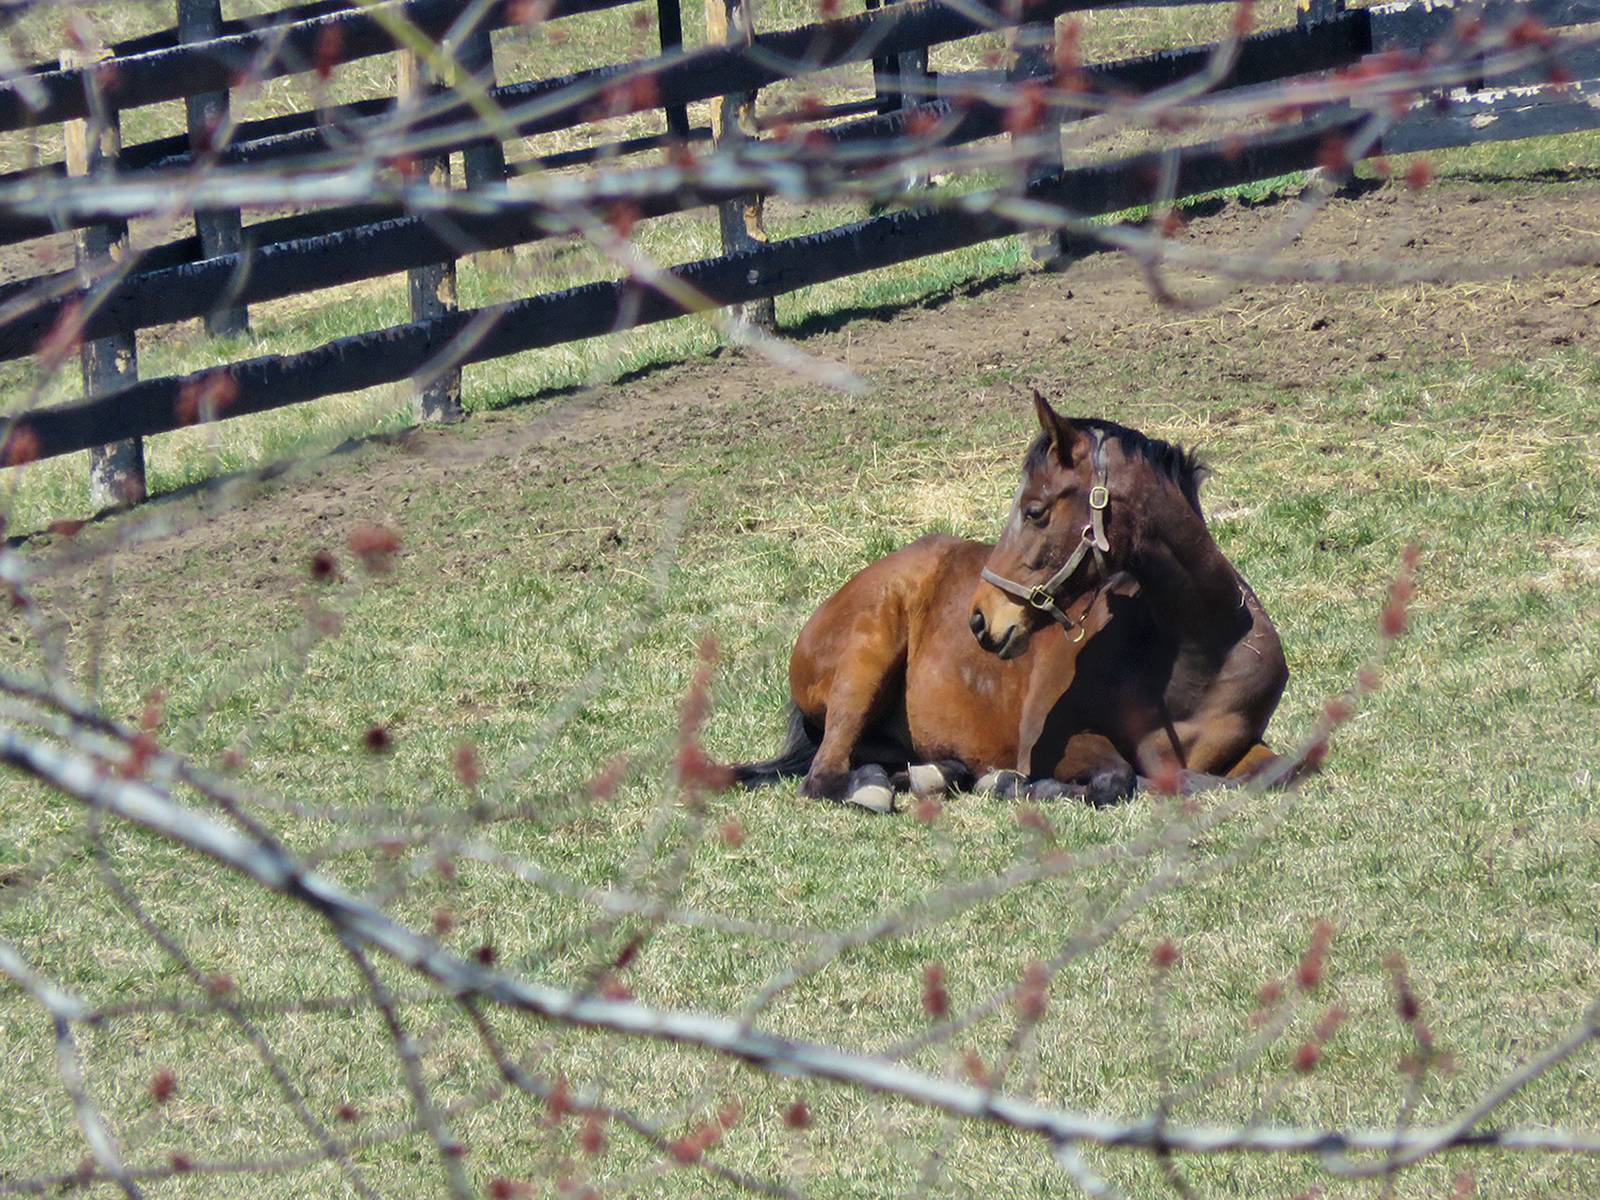 I have noticed lately some of the horses boarded near me are laying down some of the time. I caught this one laying down today on this cold April day. When we get an occasional warm day this spring the horses are running around. I can sympathize. When is Spring going to come?